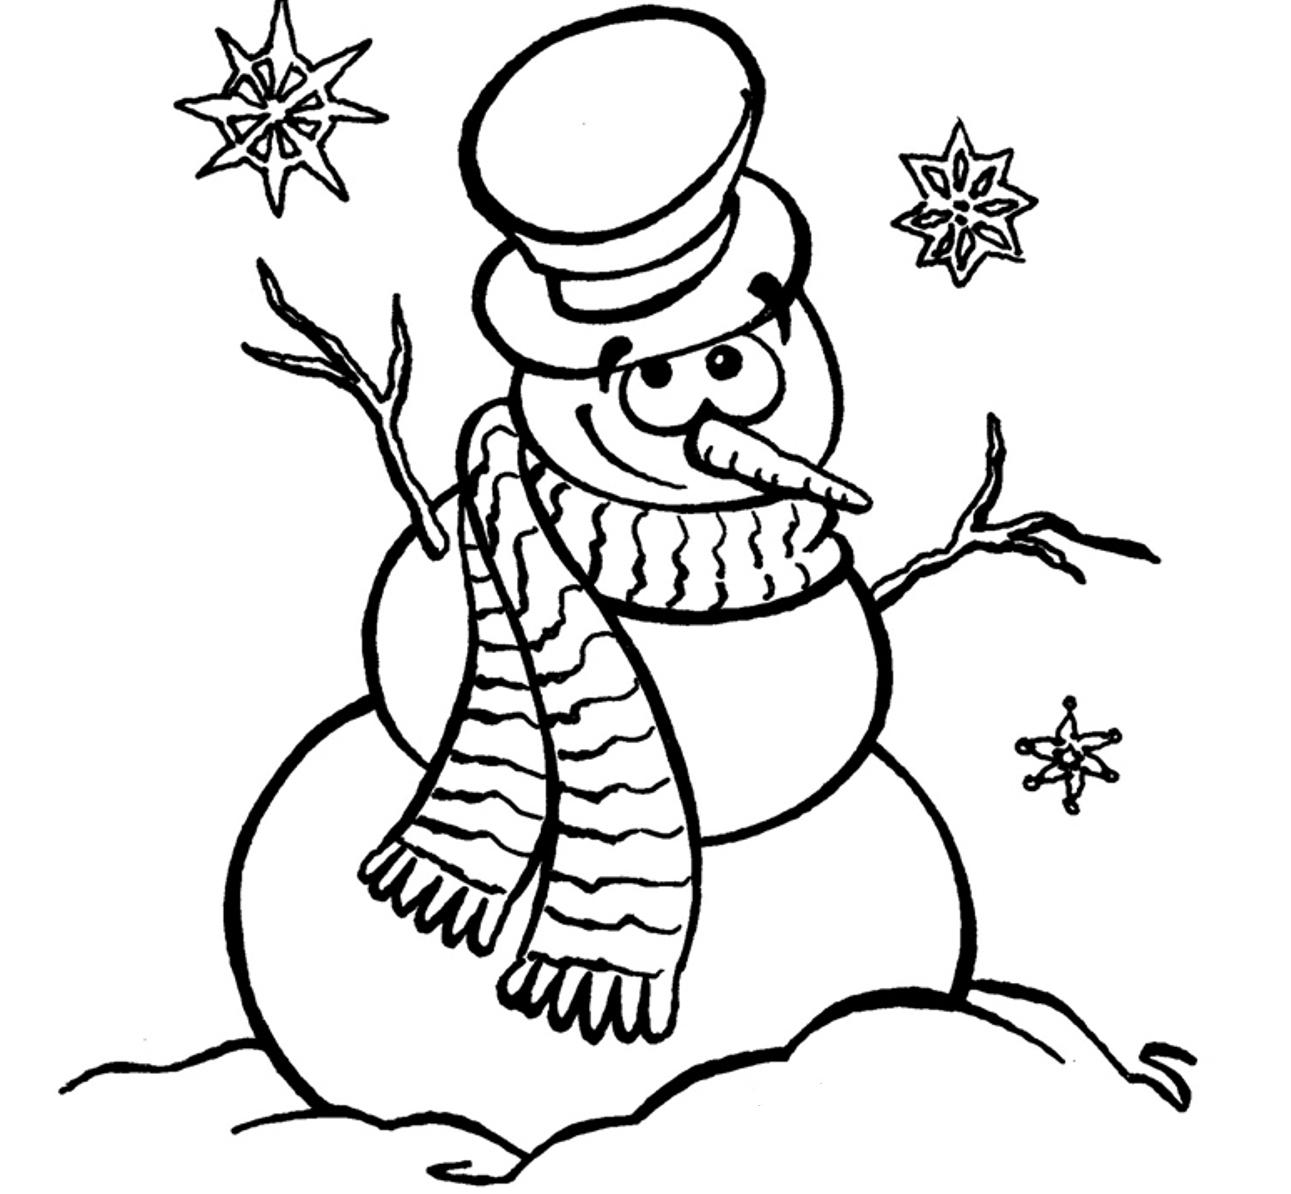 1291x1194 Reduced Coloring Pages Of Snowmen Approved Pic